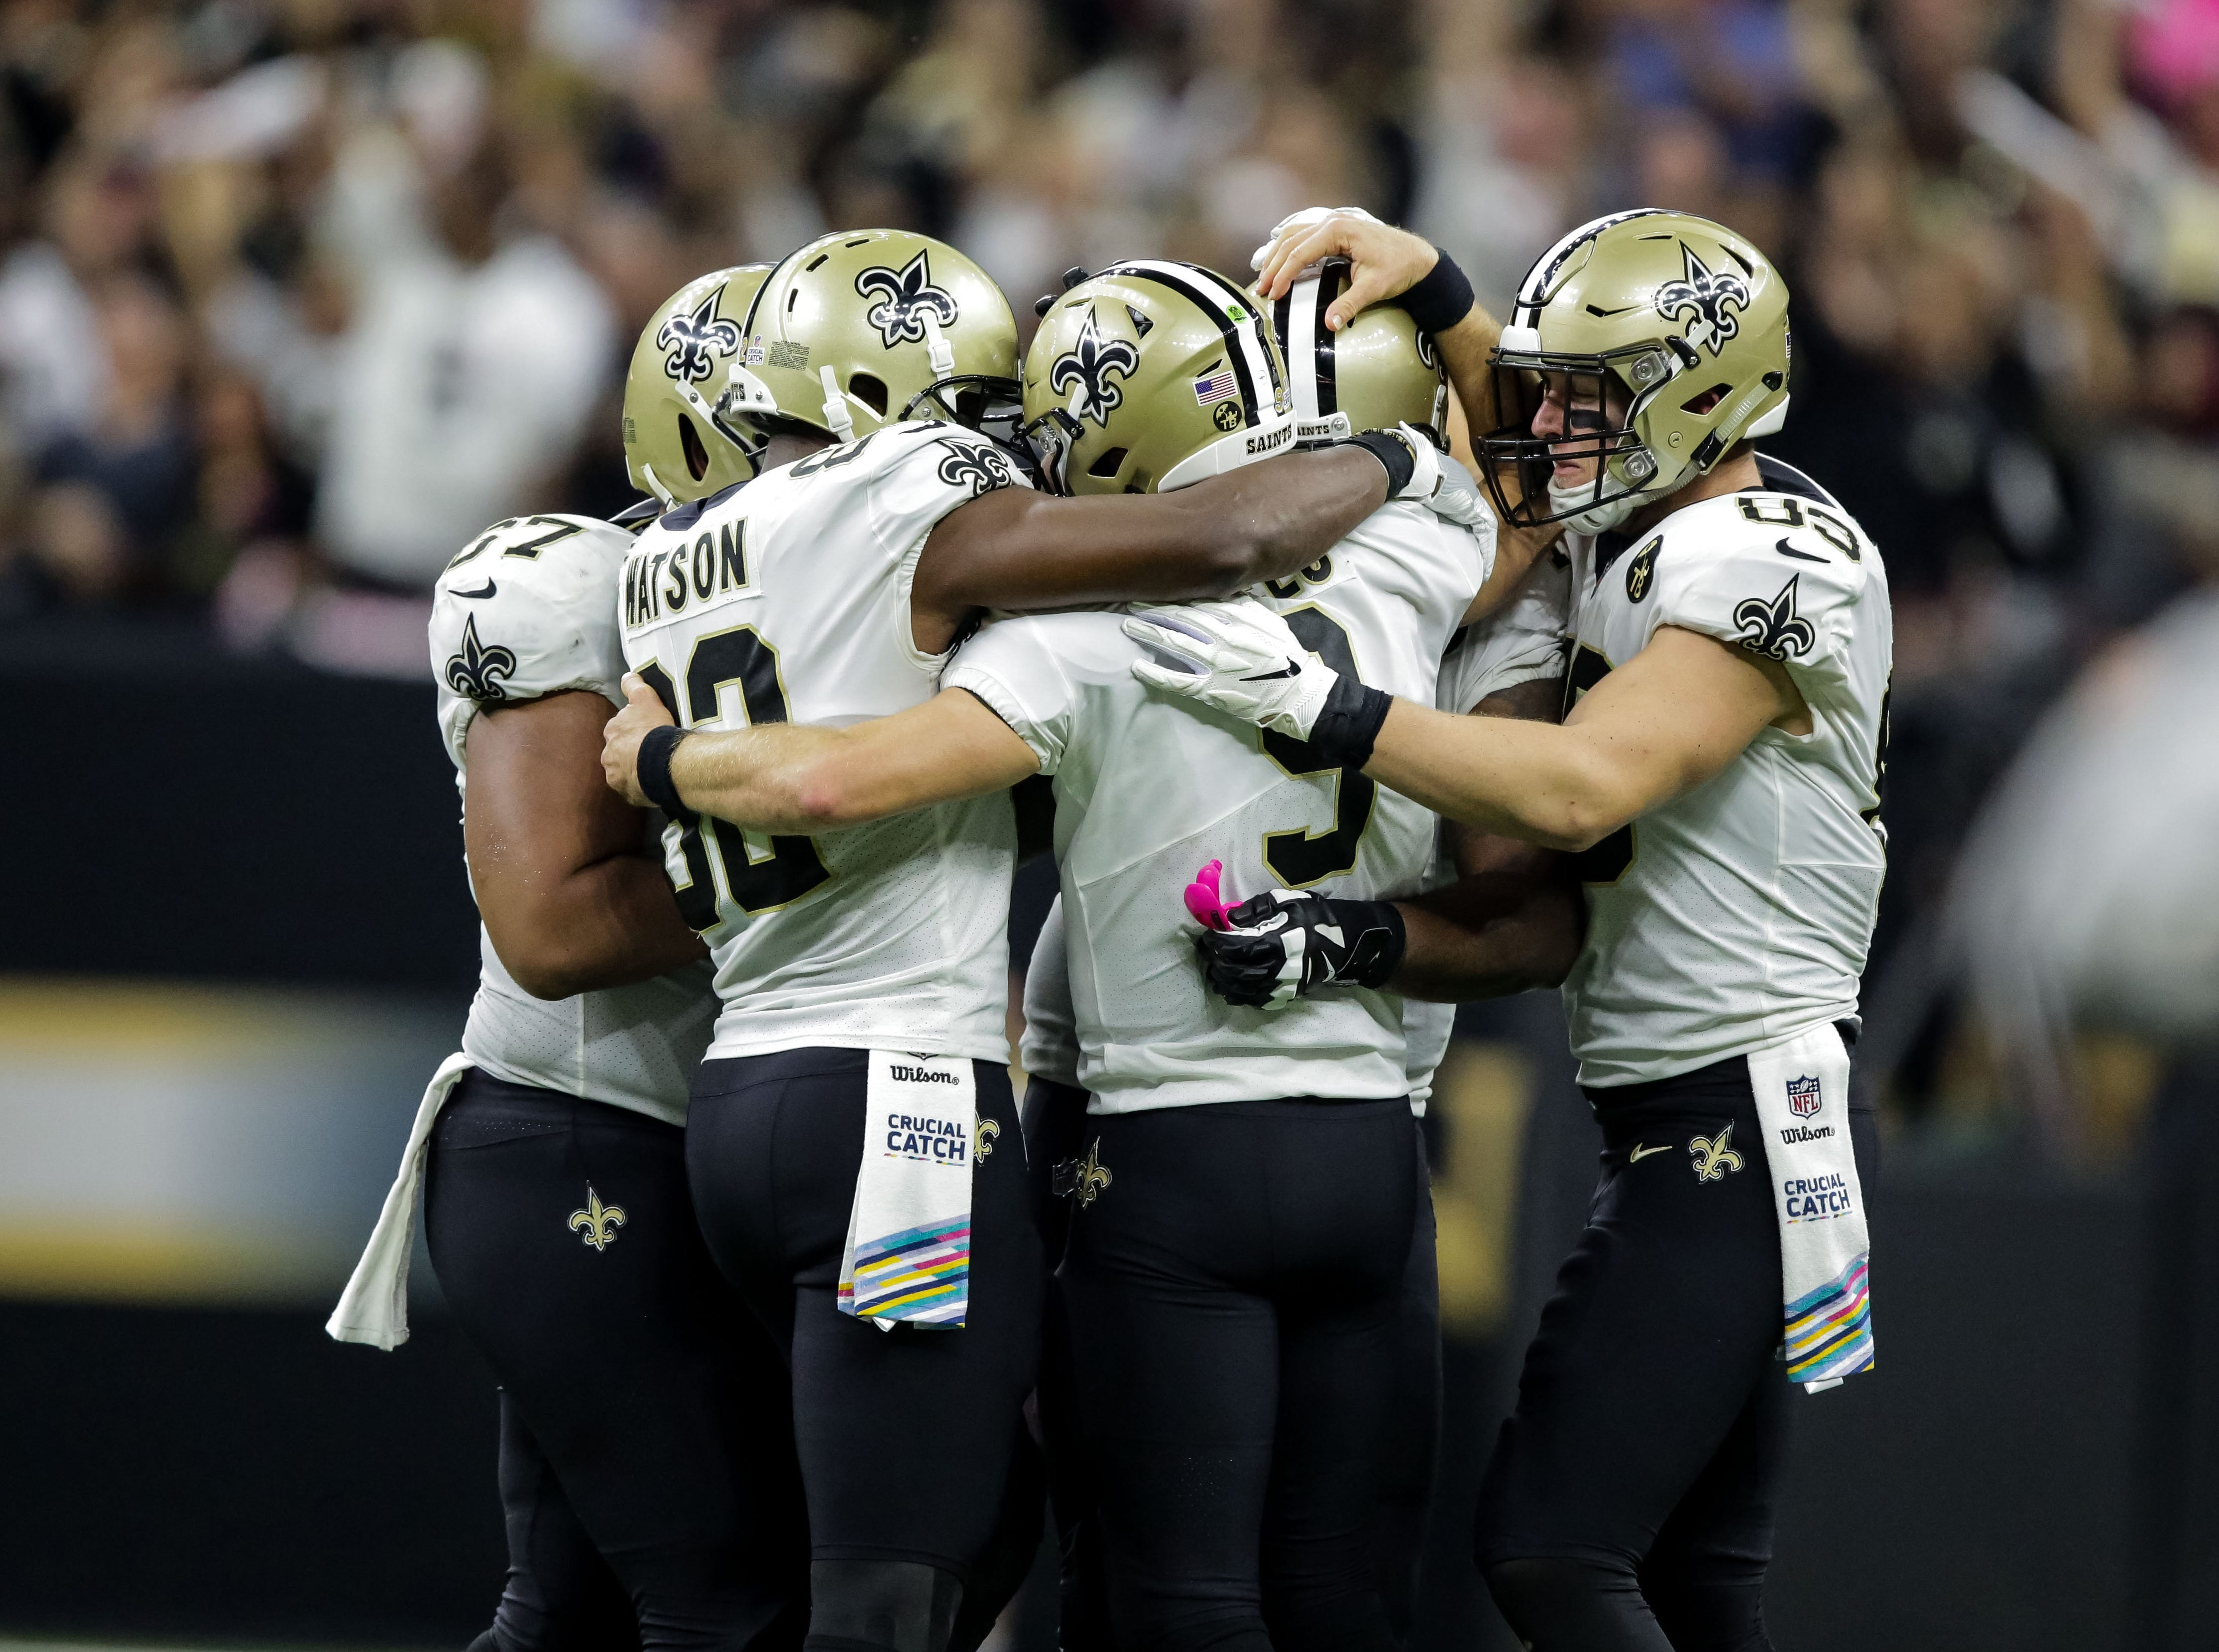 Oct 8, 2018; New Orleans, LA, USA; New Orleans Saints quarterback Drew Brees (9) celebrates with teammates after setting the NFL record for passing yardage during the second quarter against the Washington Redskins at the Mercedes-Benz Superdome.